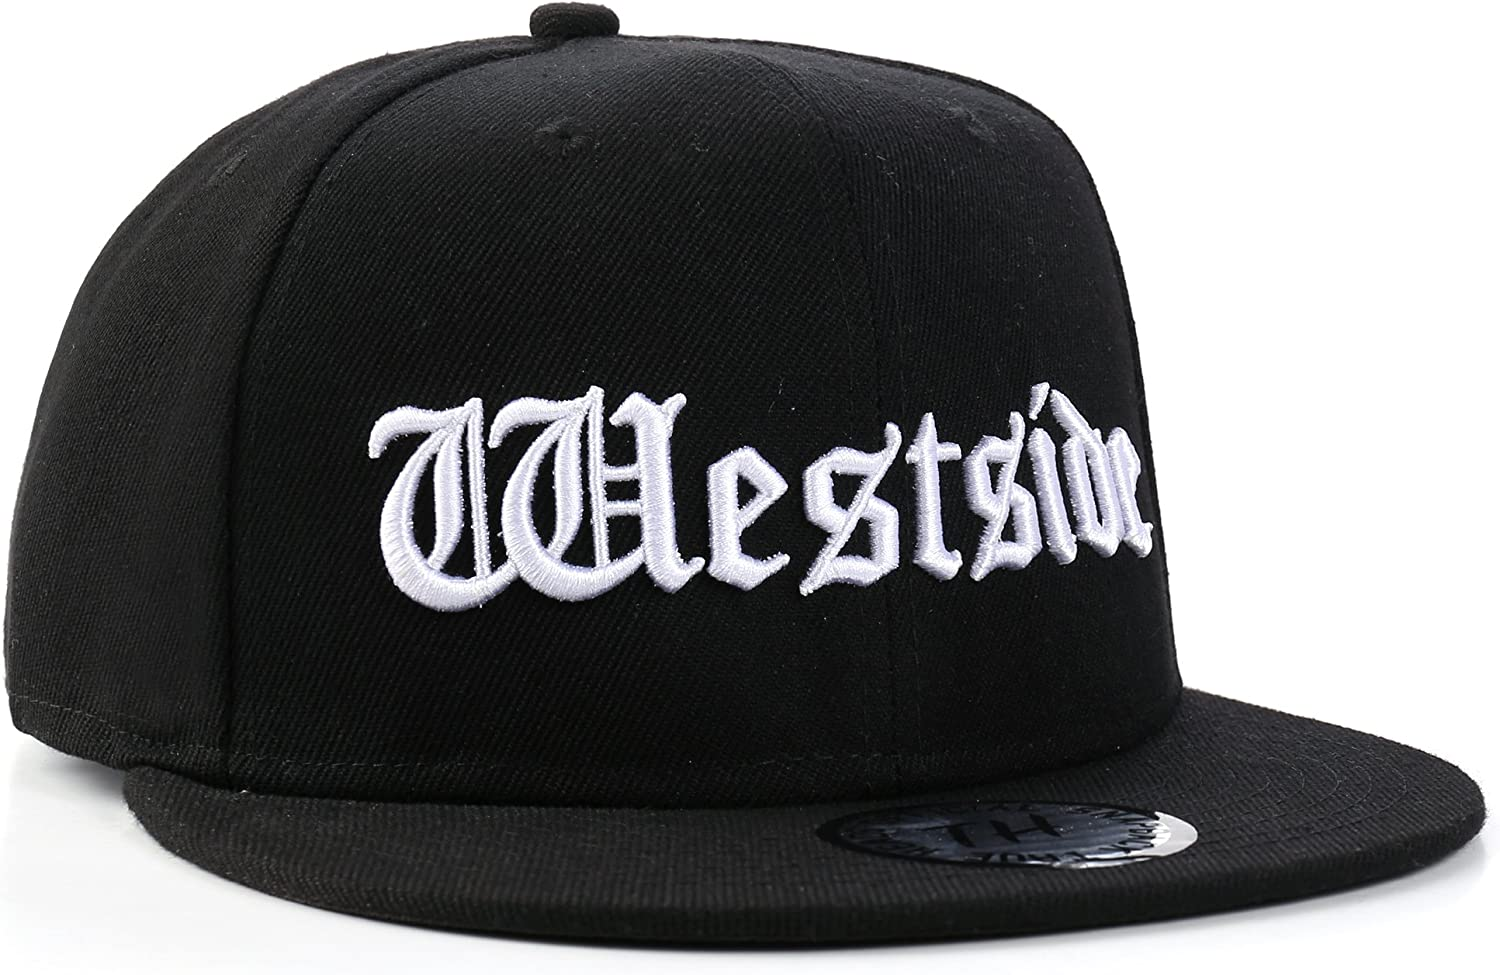 Costa Este vs Costa Oeste Gorra Negra Hip Hop por True Heads ...